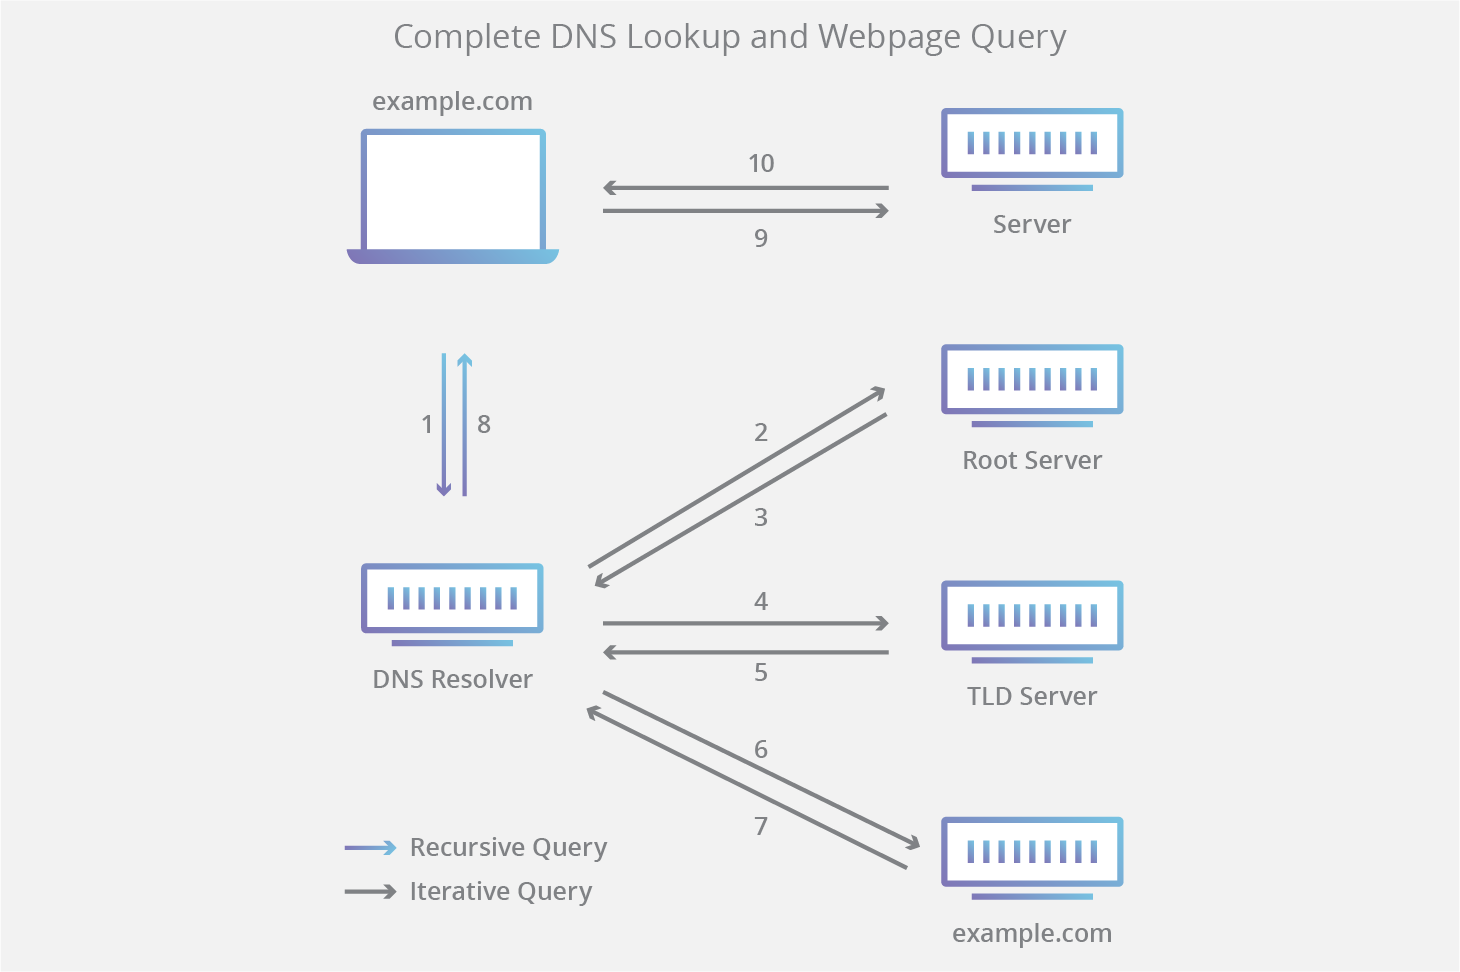 dns-lookup-diagram